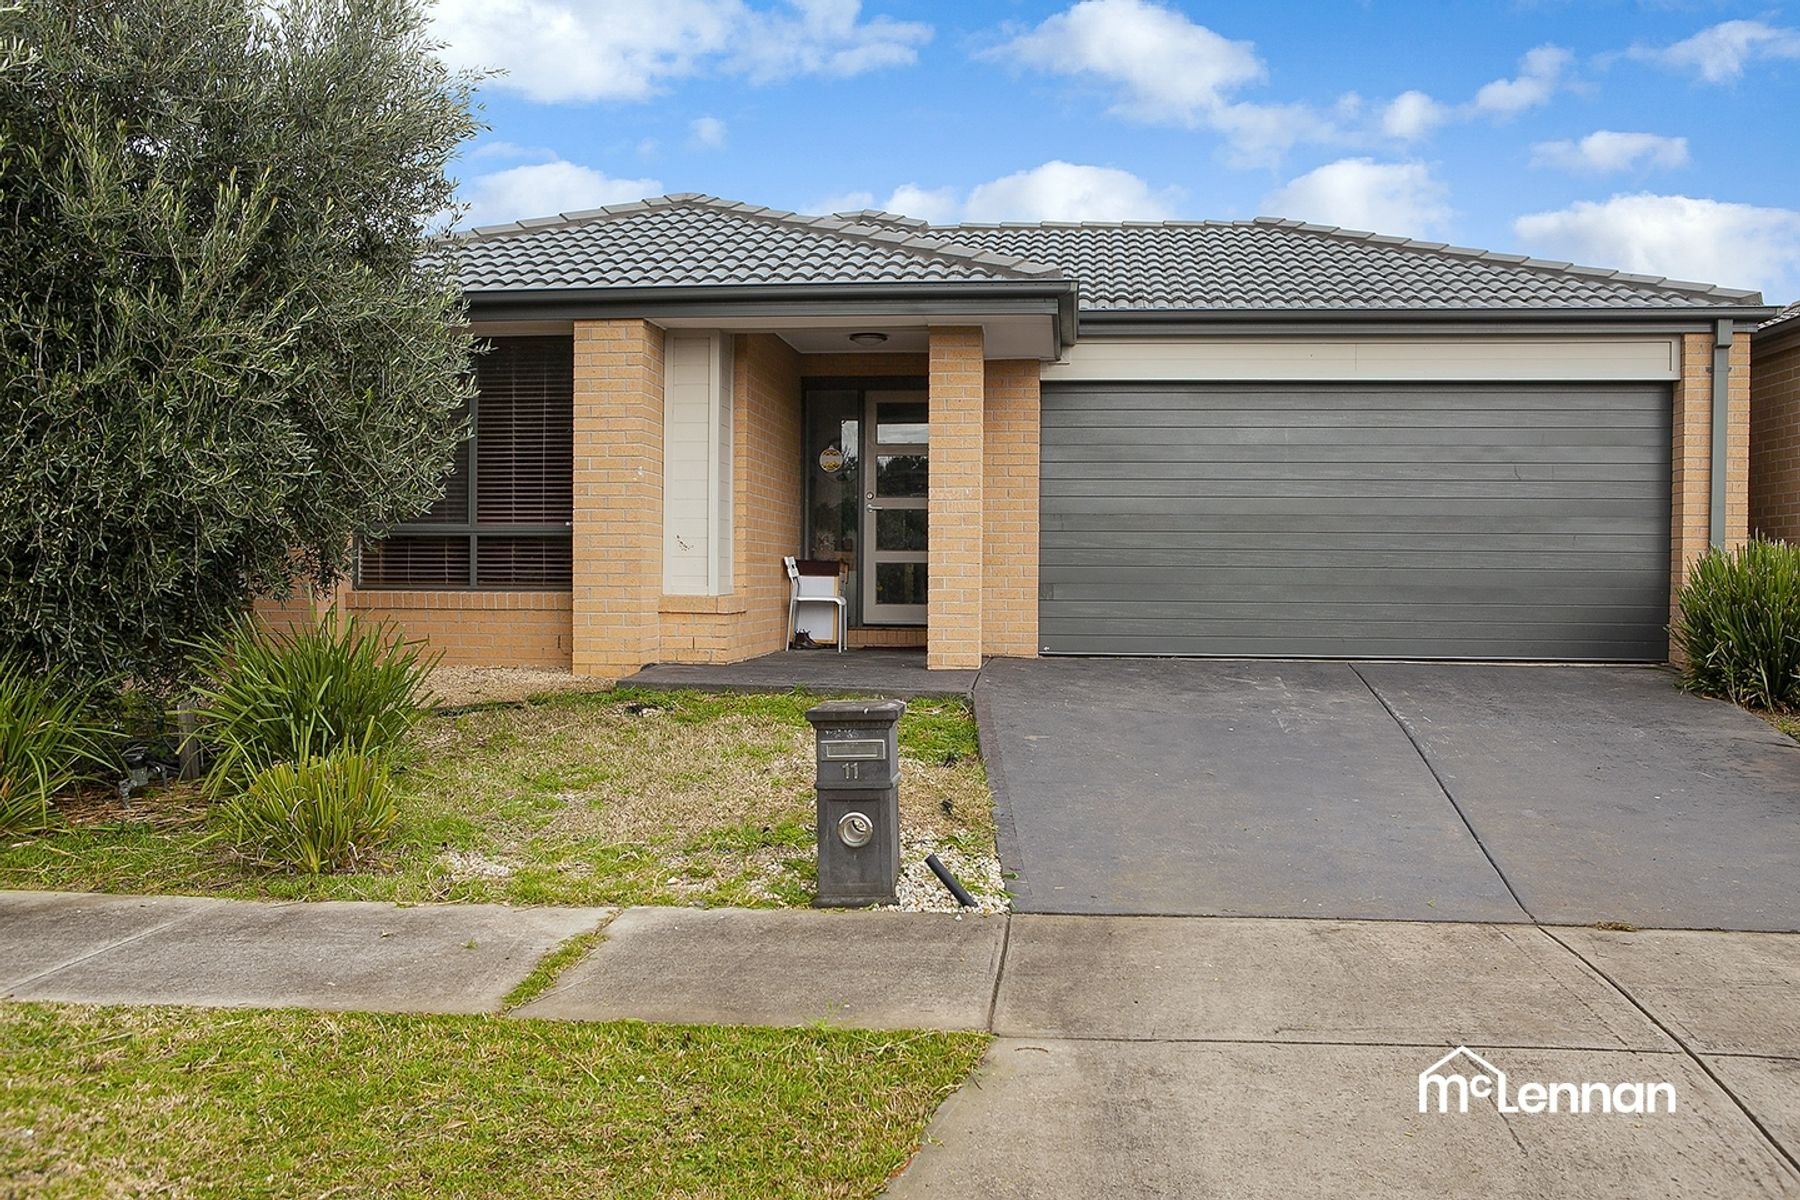 11 Atwood Street, Doreen, VIC 3754